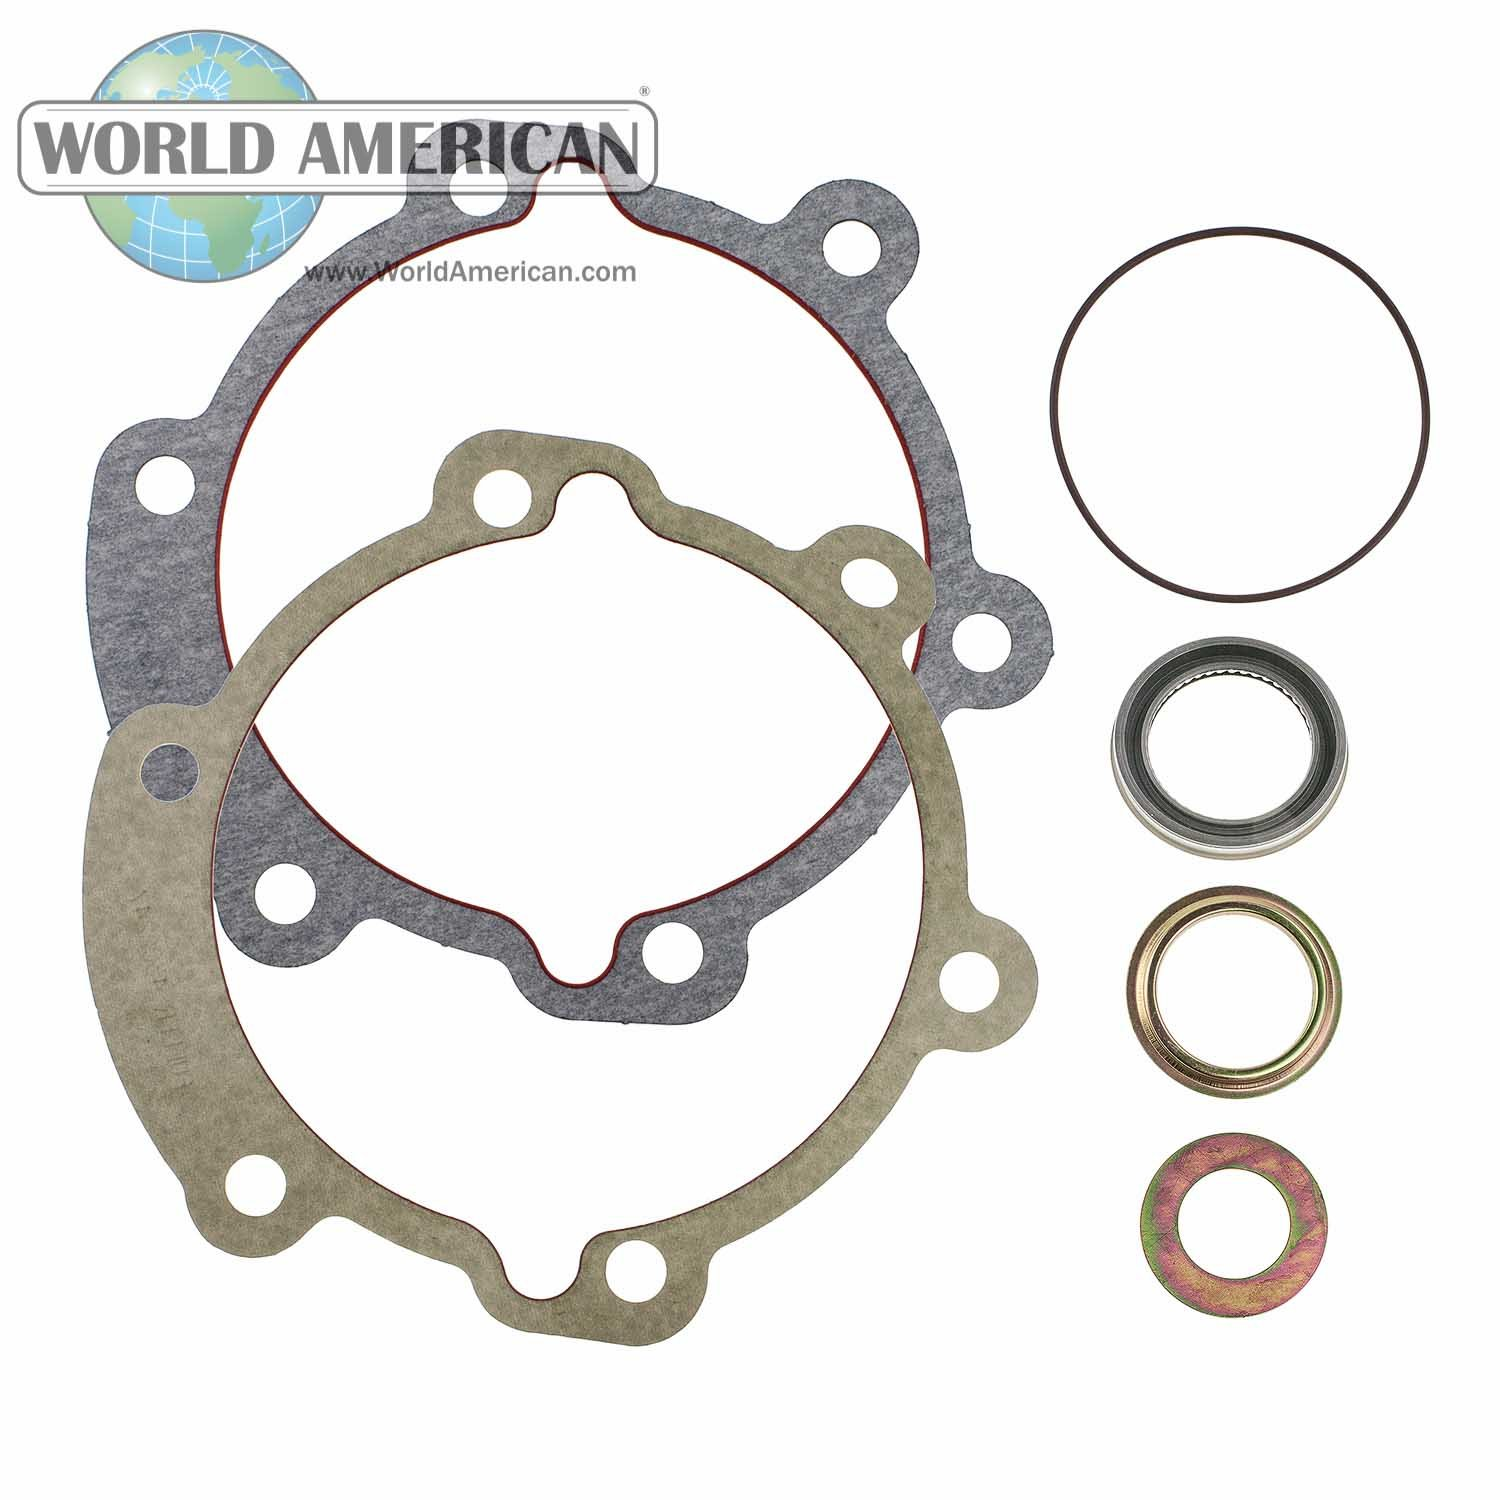 World American K2918 Gasket and Seal Kit by World American